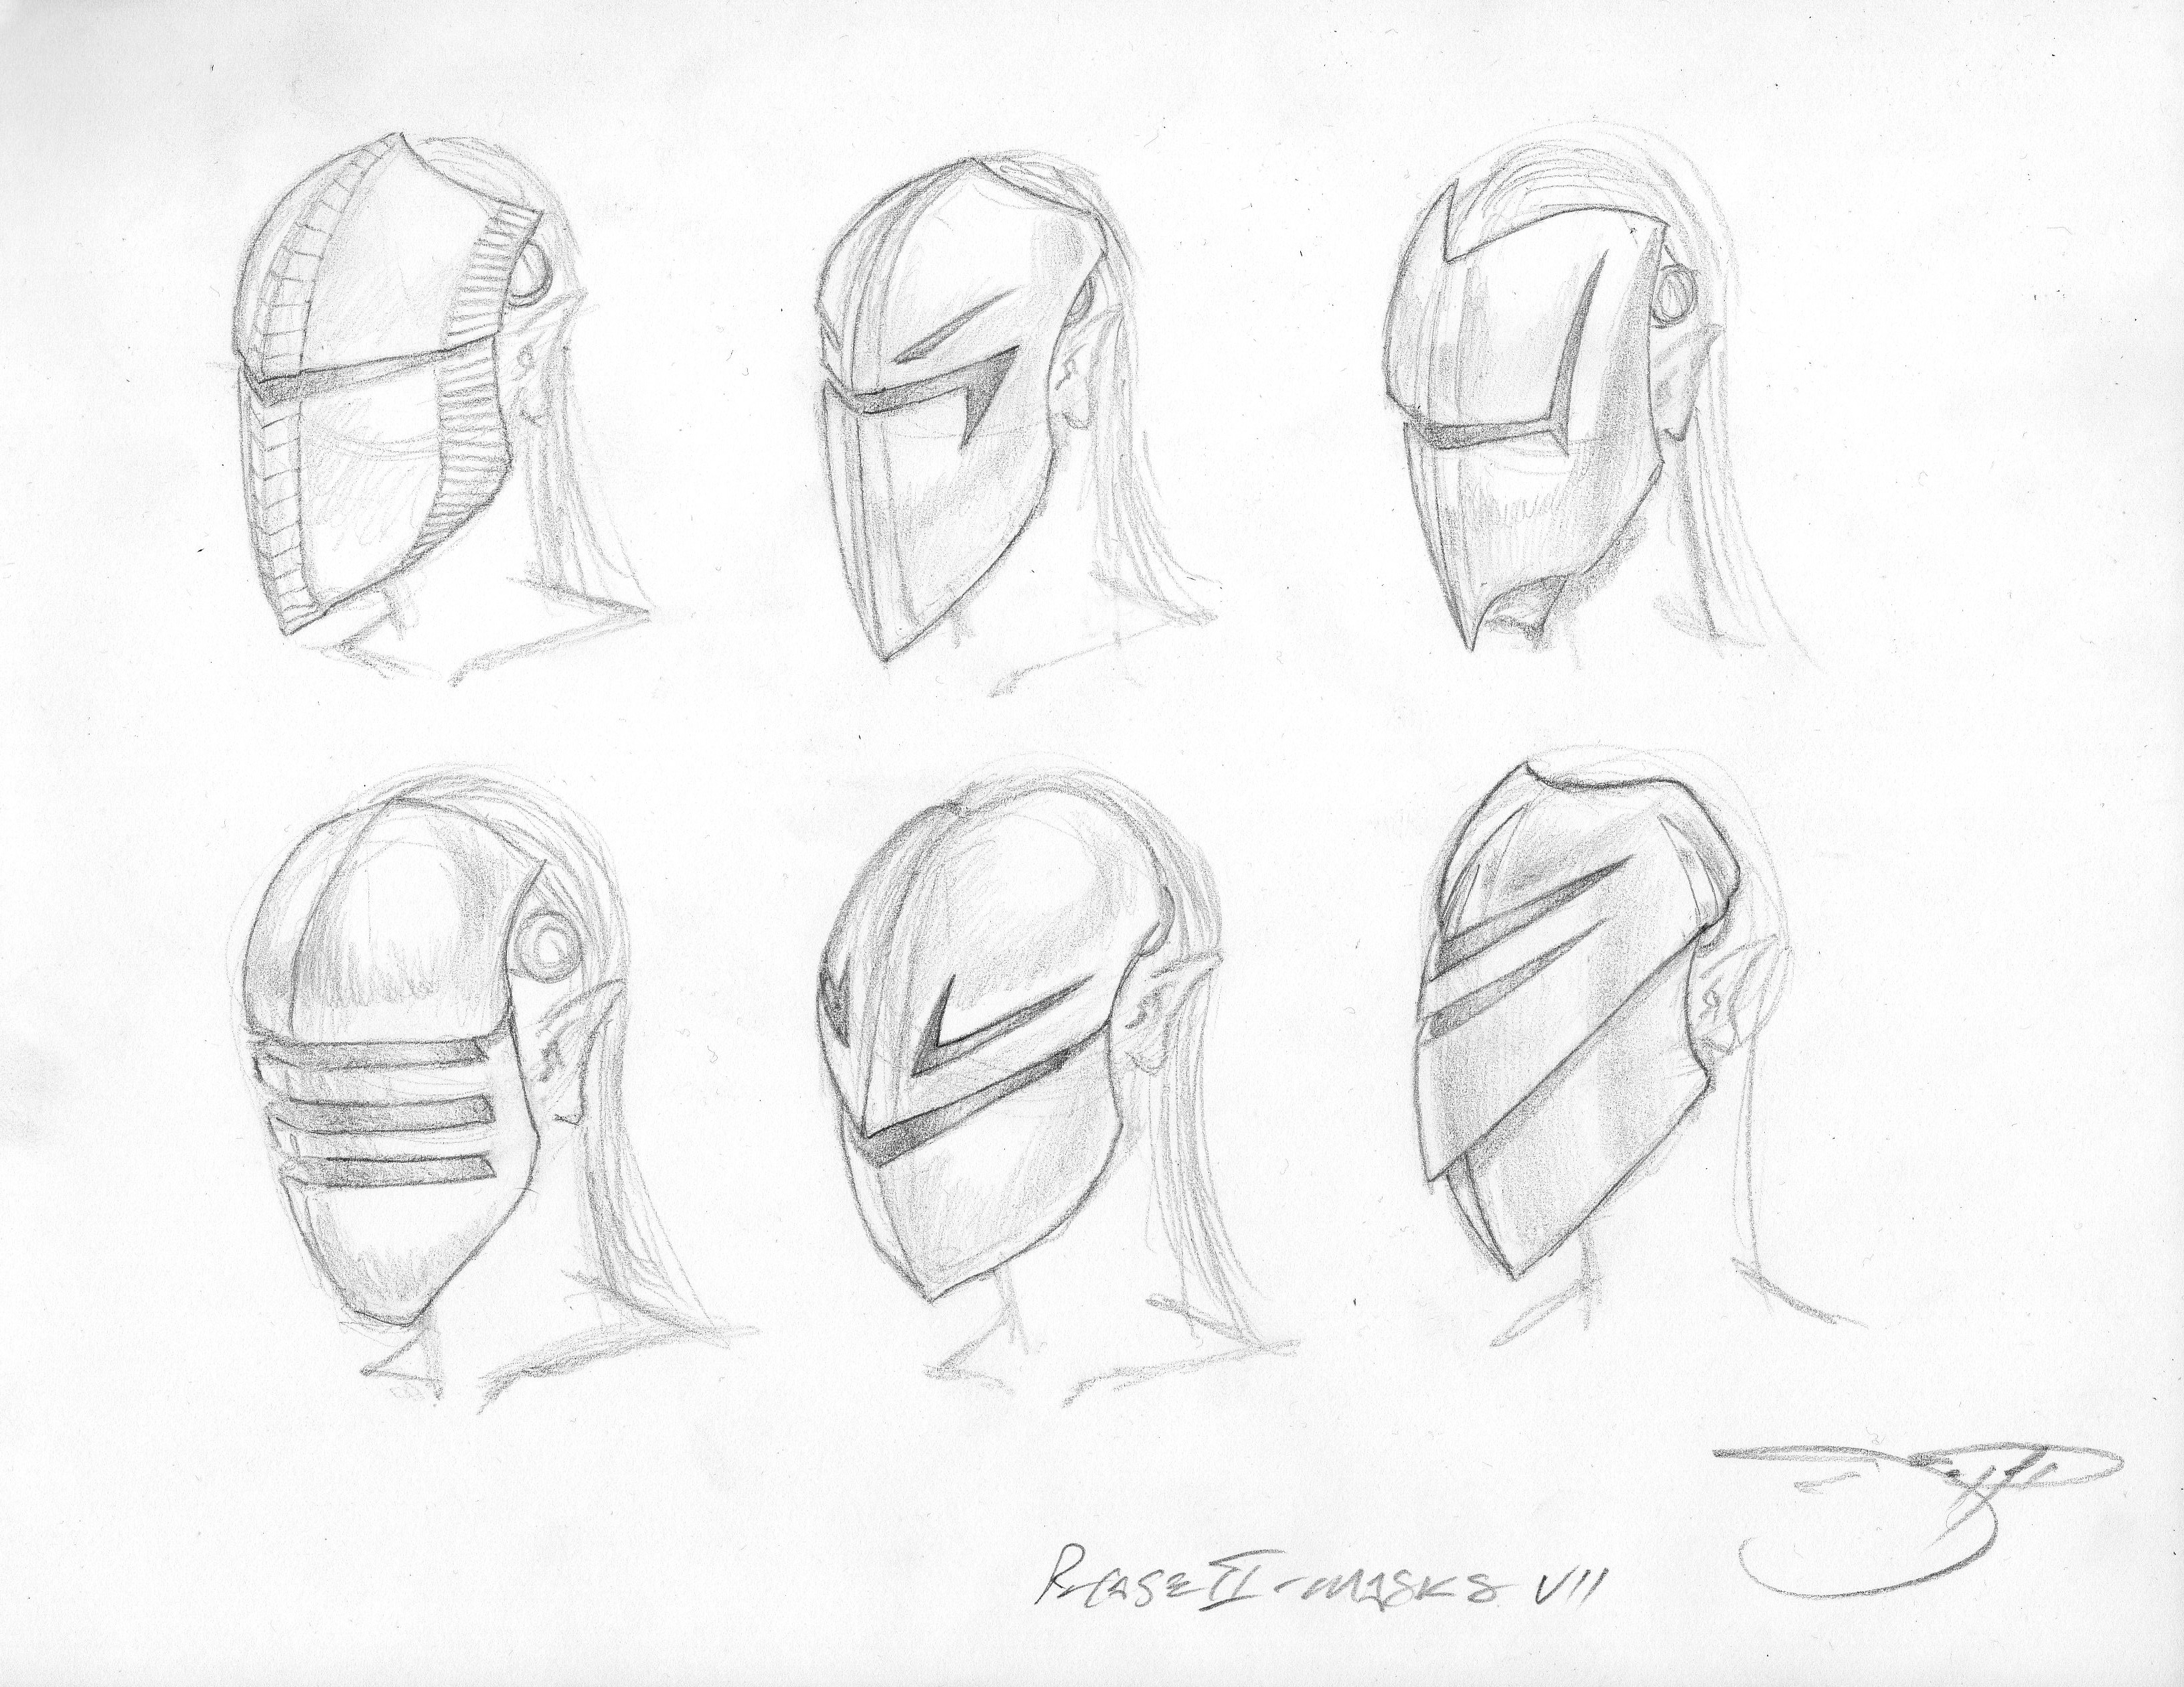 3 Sith Lord Sketches - Phase 2 Mask VII 034